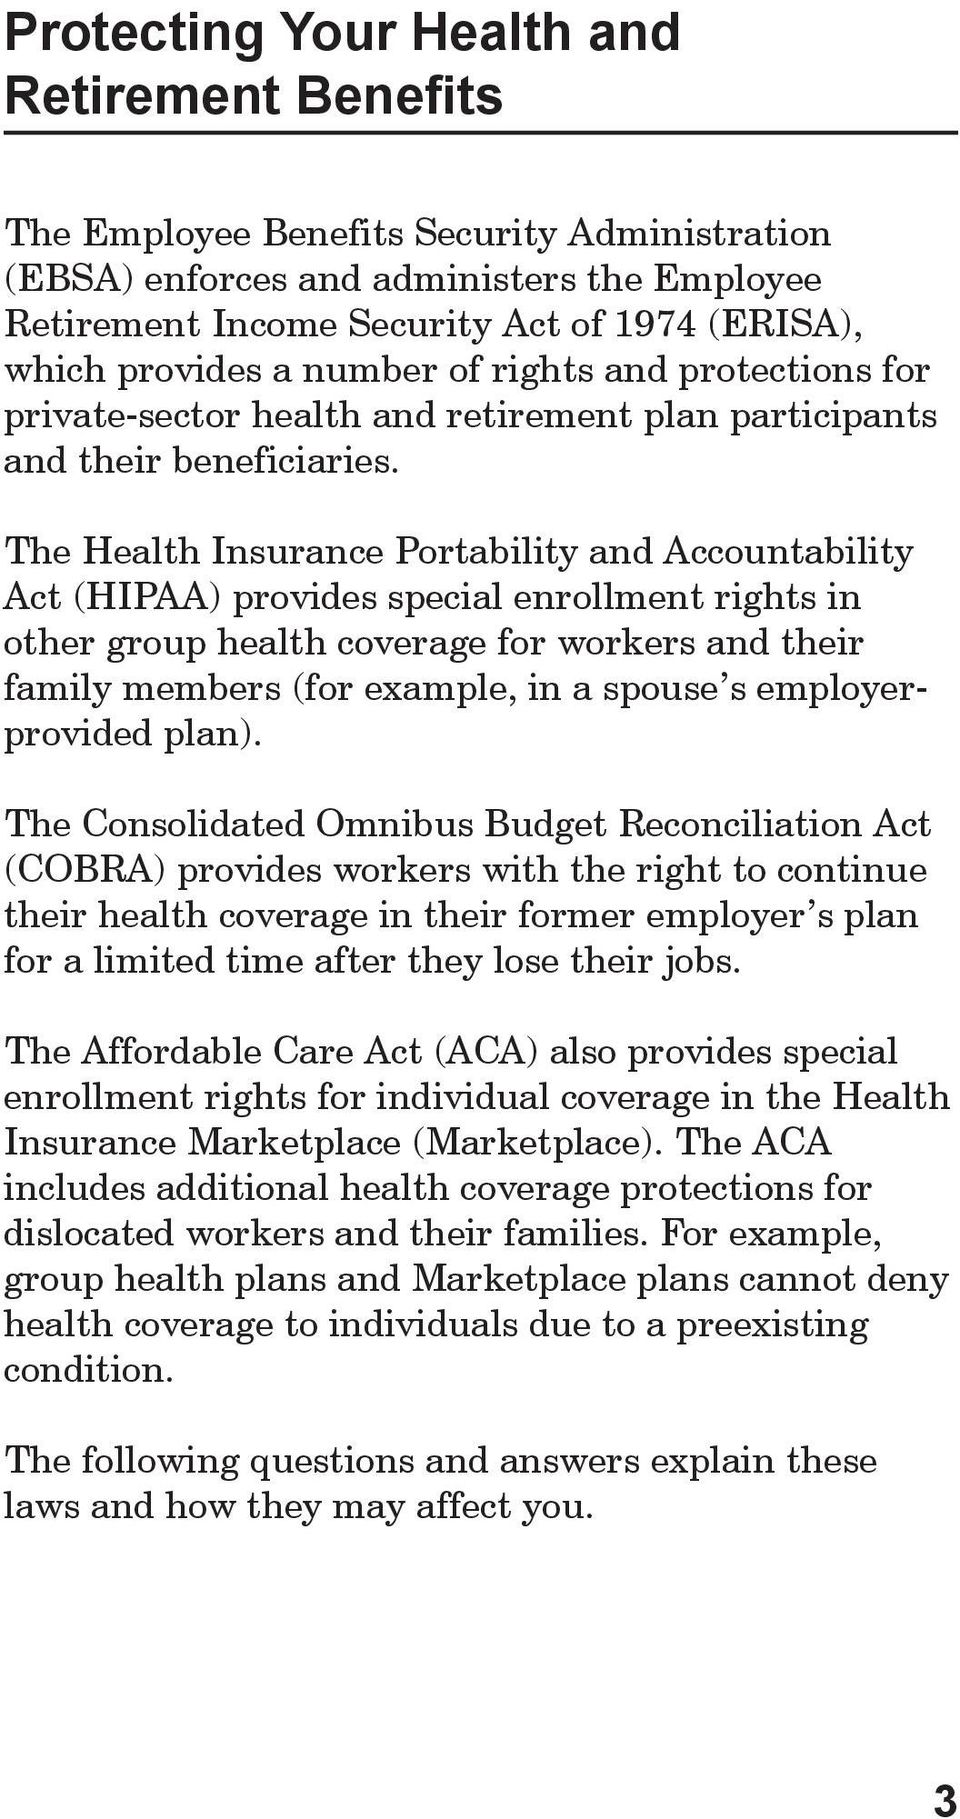 The Health Insurance Portability and Accountability Act (HIPAA) provides special enrollment rights in other group health coverage for workers and their family members (for example, in a spouse s